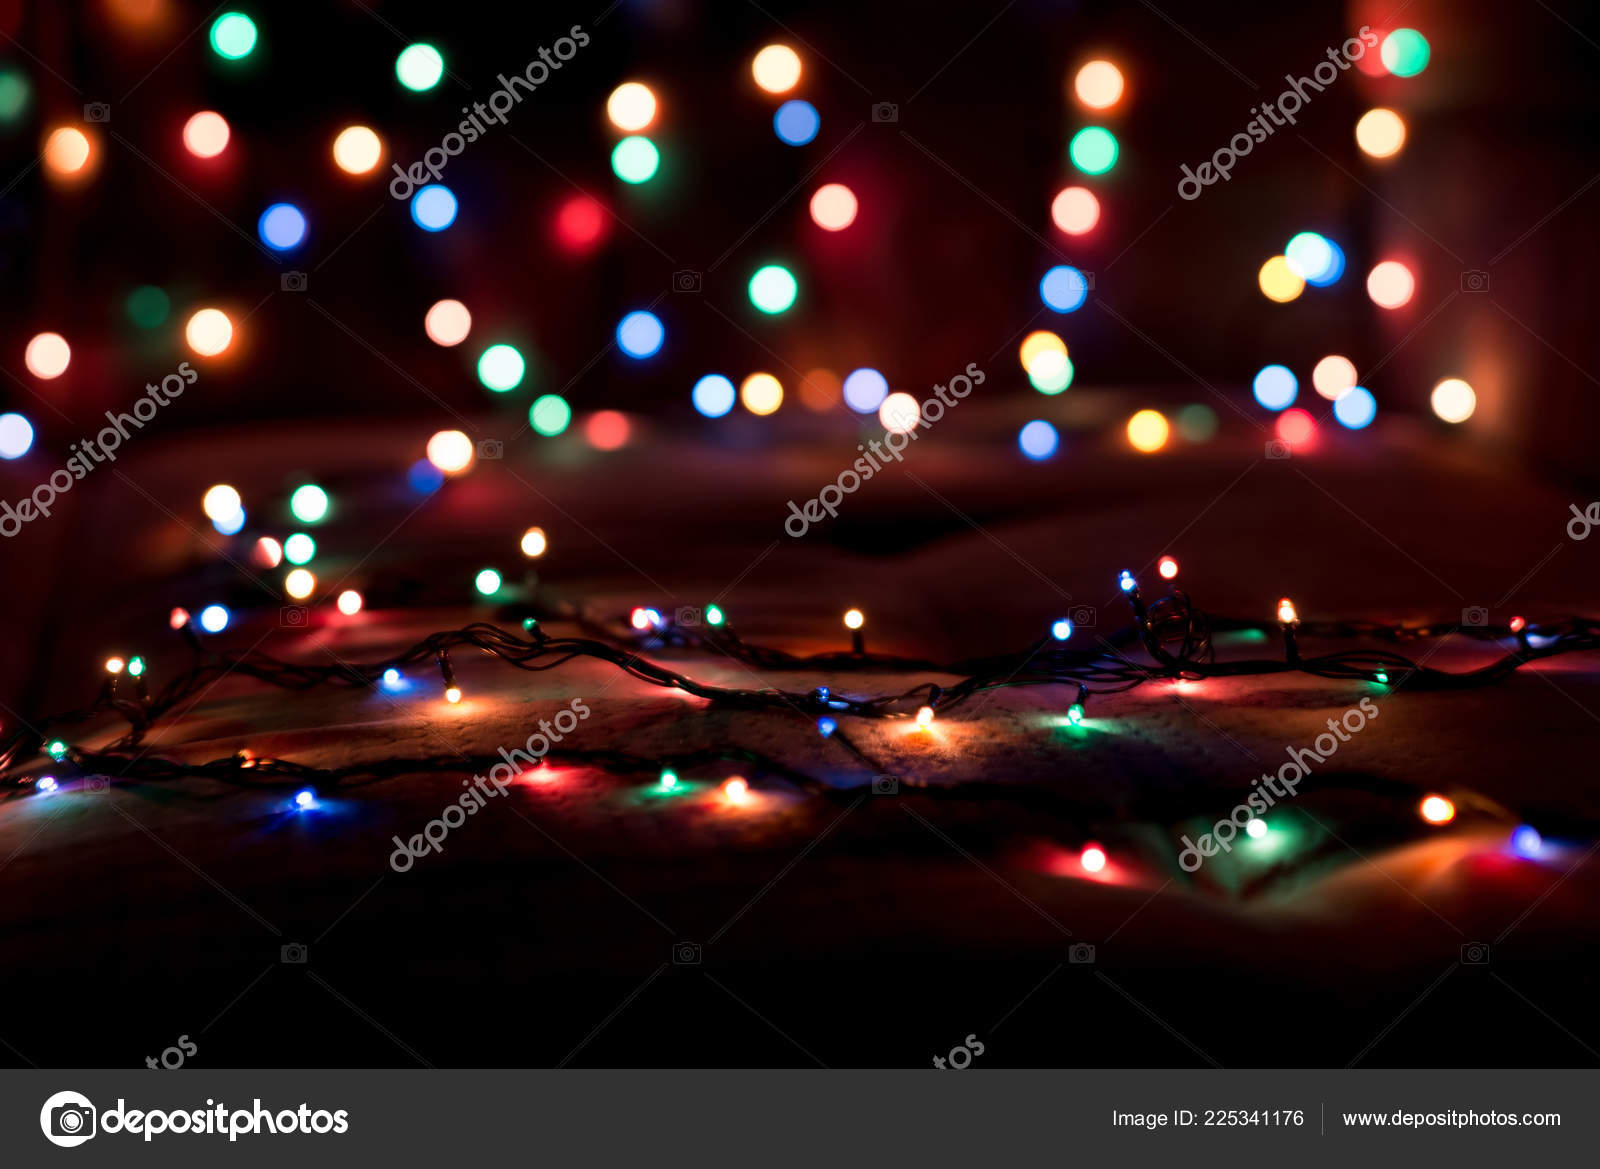 Colorful Christmas Lights Background.Colorful Christmas Lights Blurred Background Stock Photo